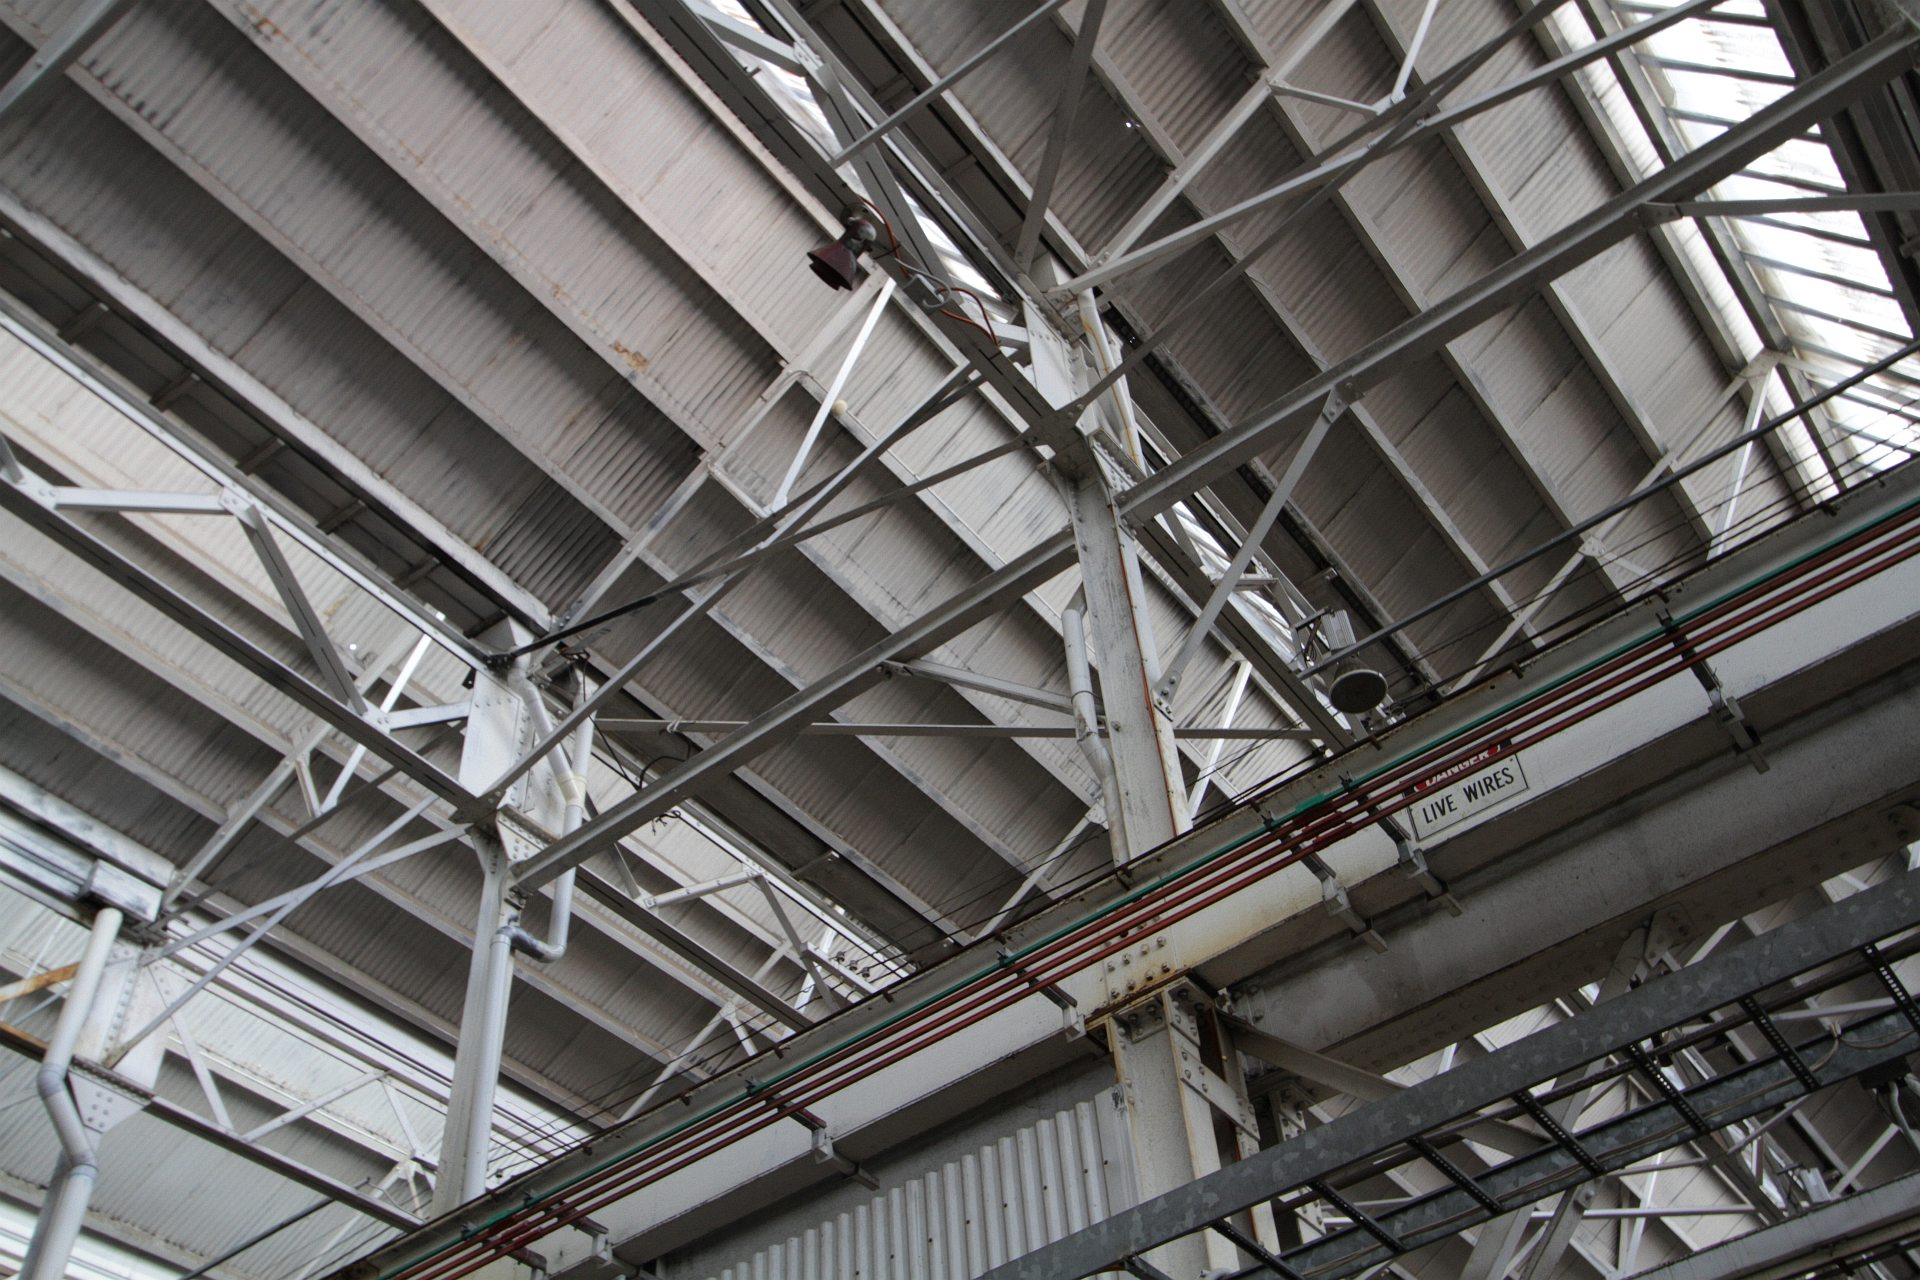 Overhead Crane Rails Follow The Sawtooth Roof Of The